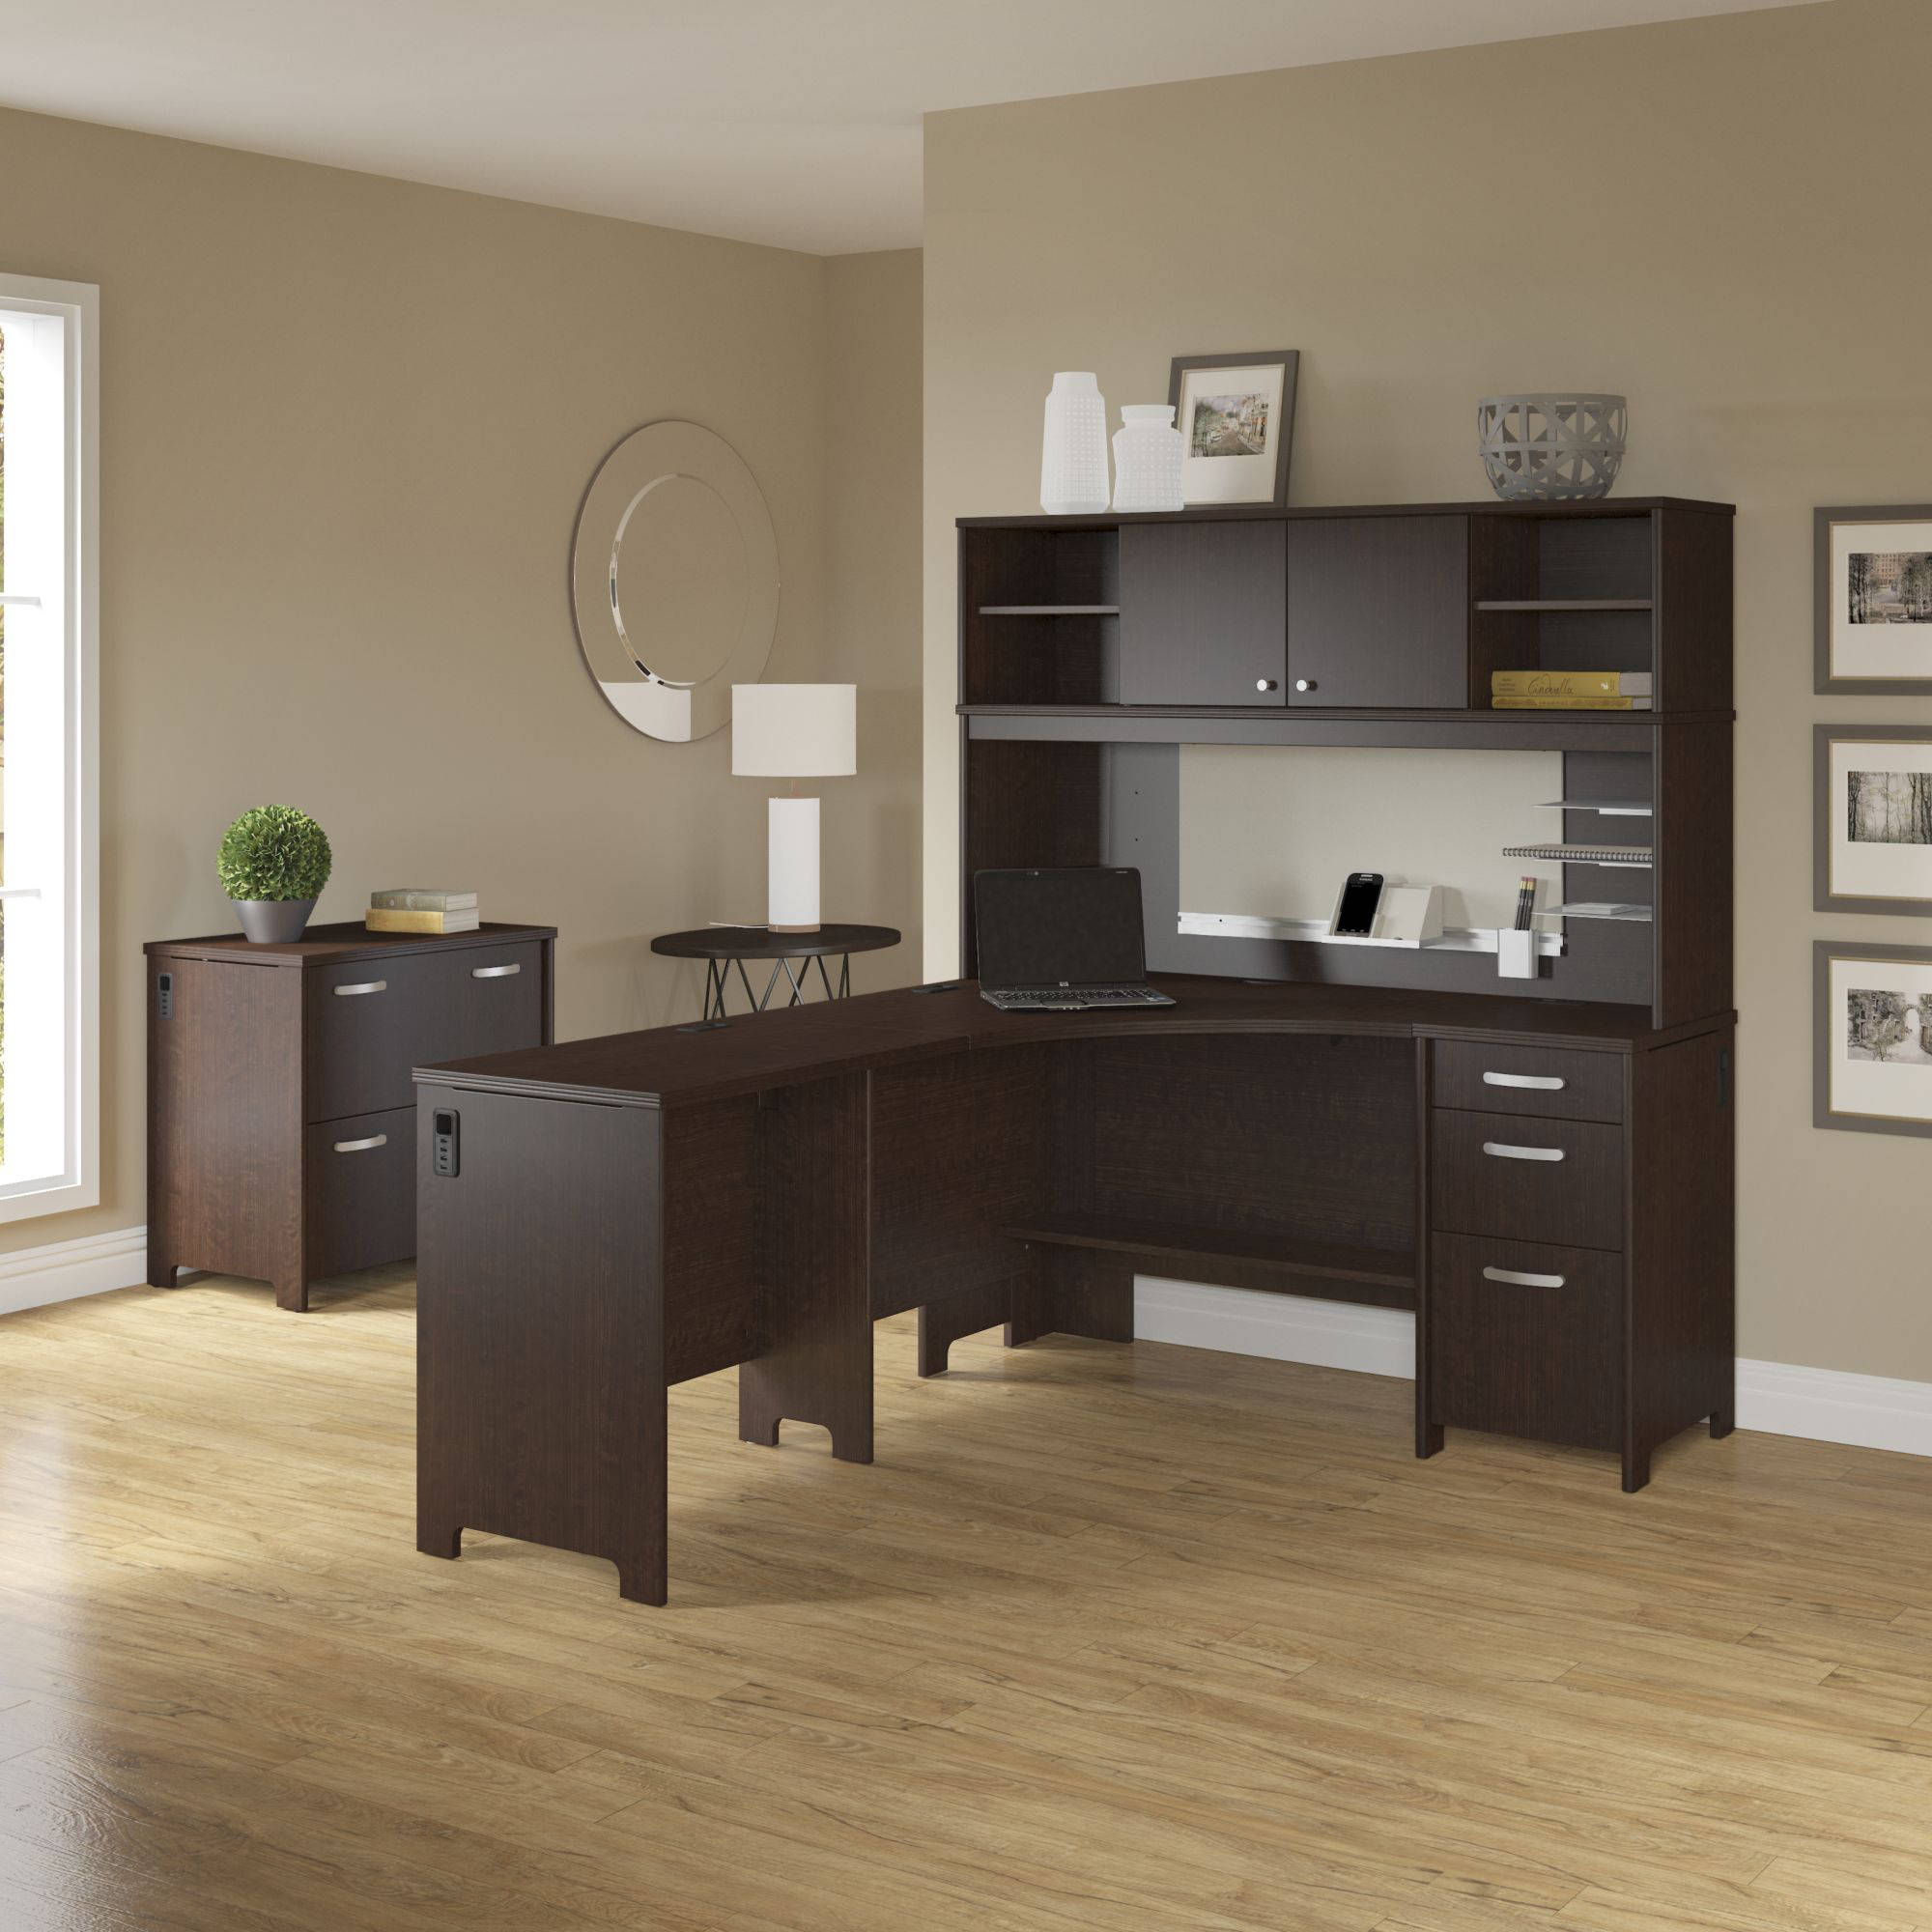 Activate Corner Desk and Hutch with Storage